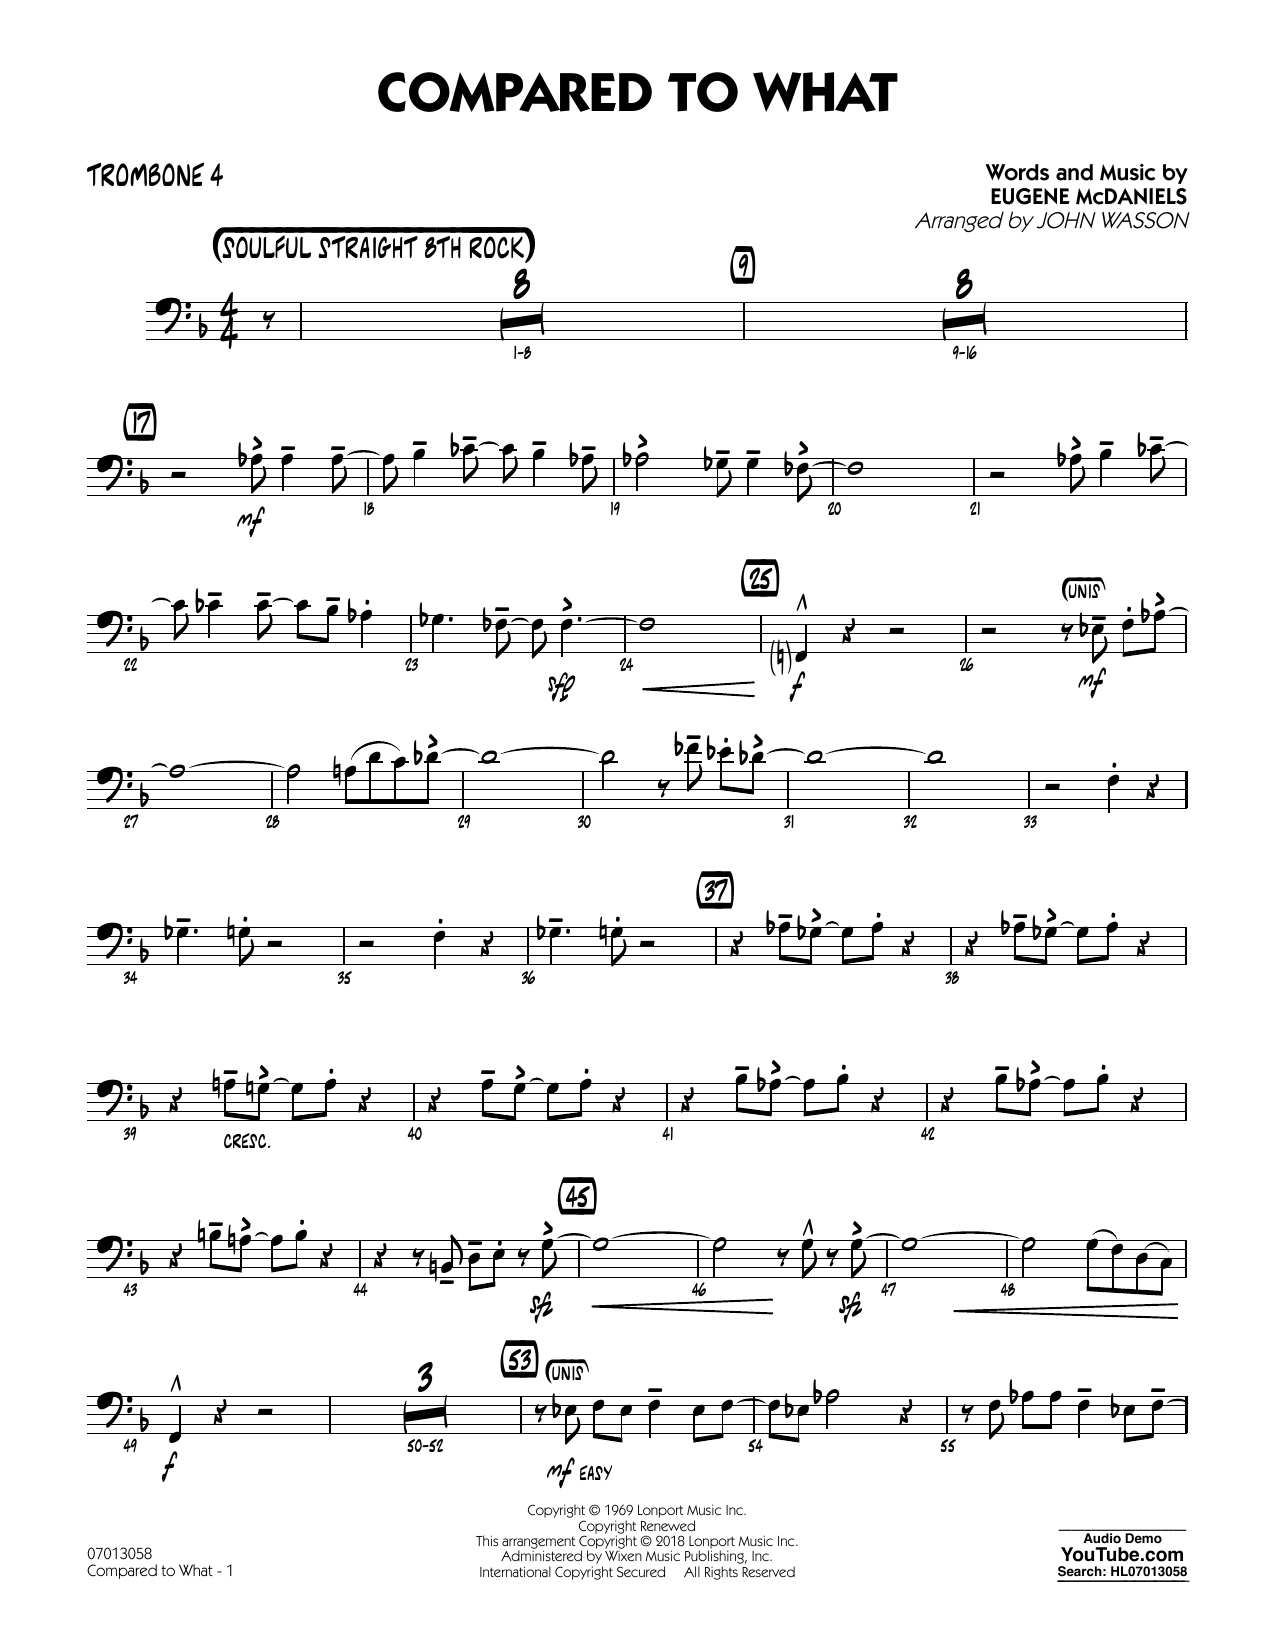 John Wasson Compared To What - Trombone 4 sheet music notes and chords. Download Printable PDF.